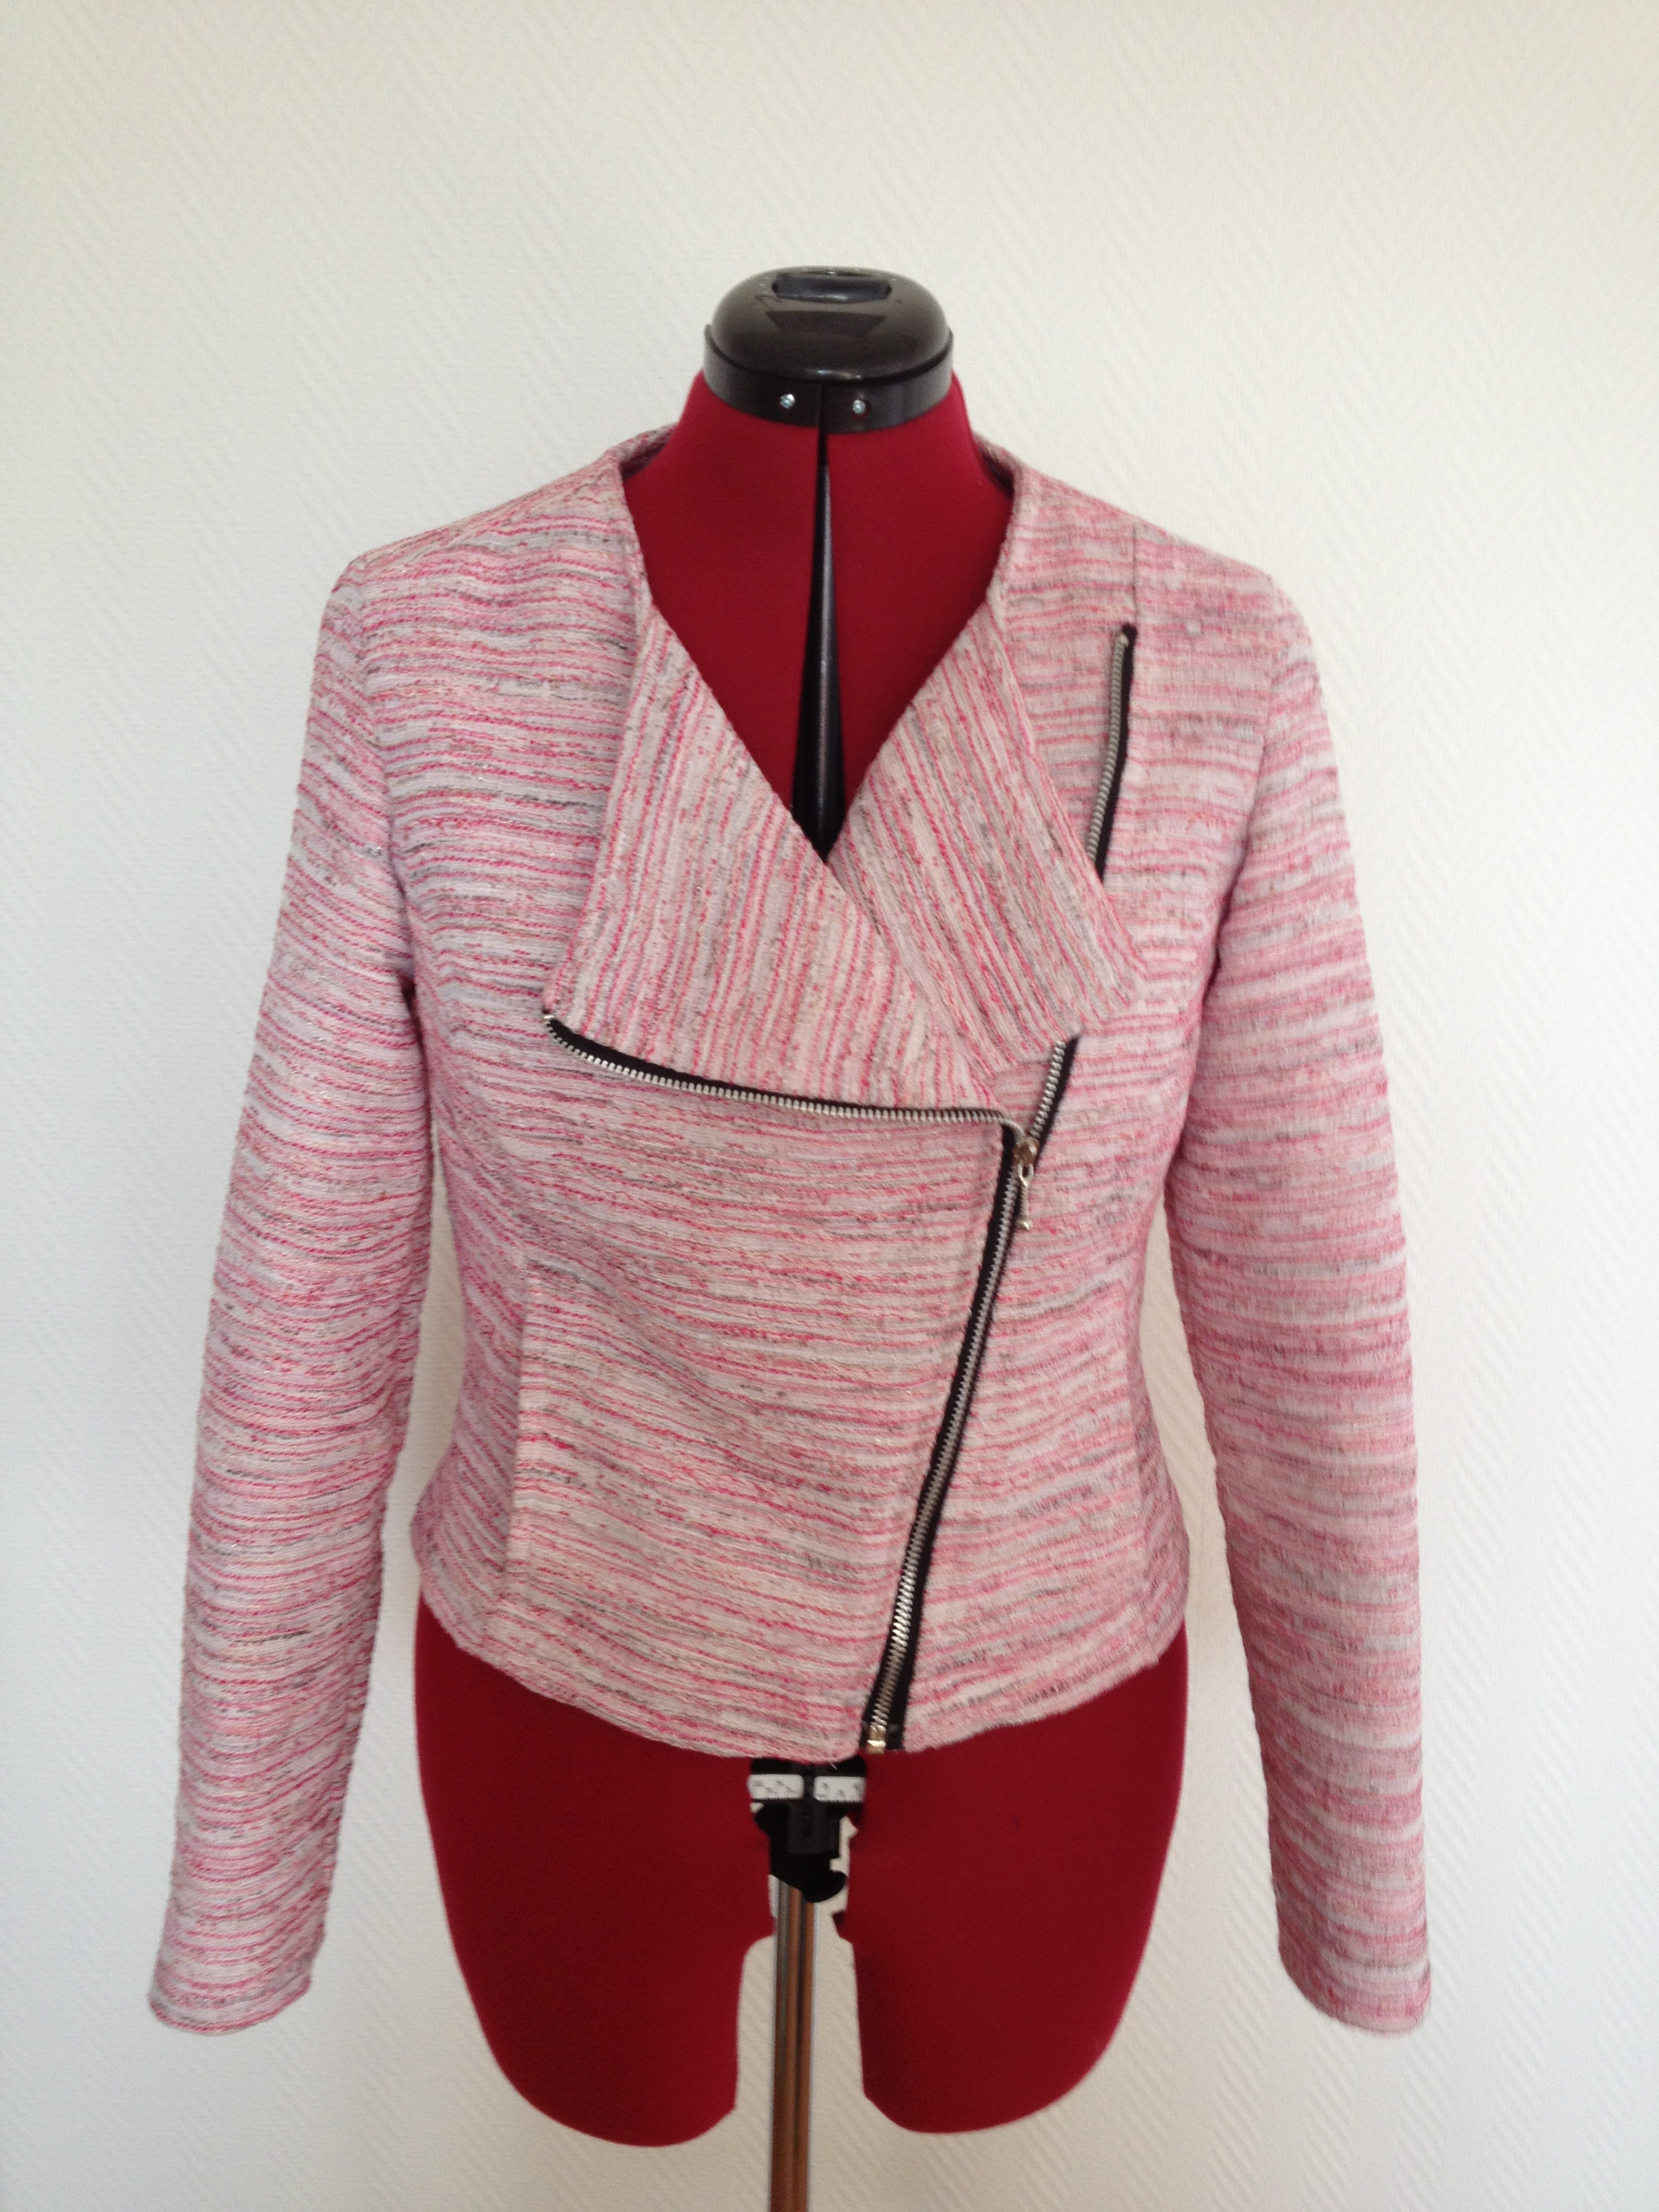 Boucle biker jacket – Sewing Projects